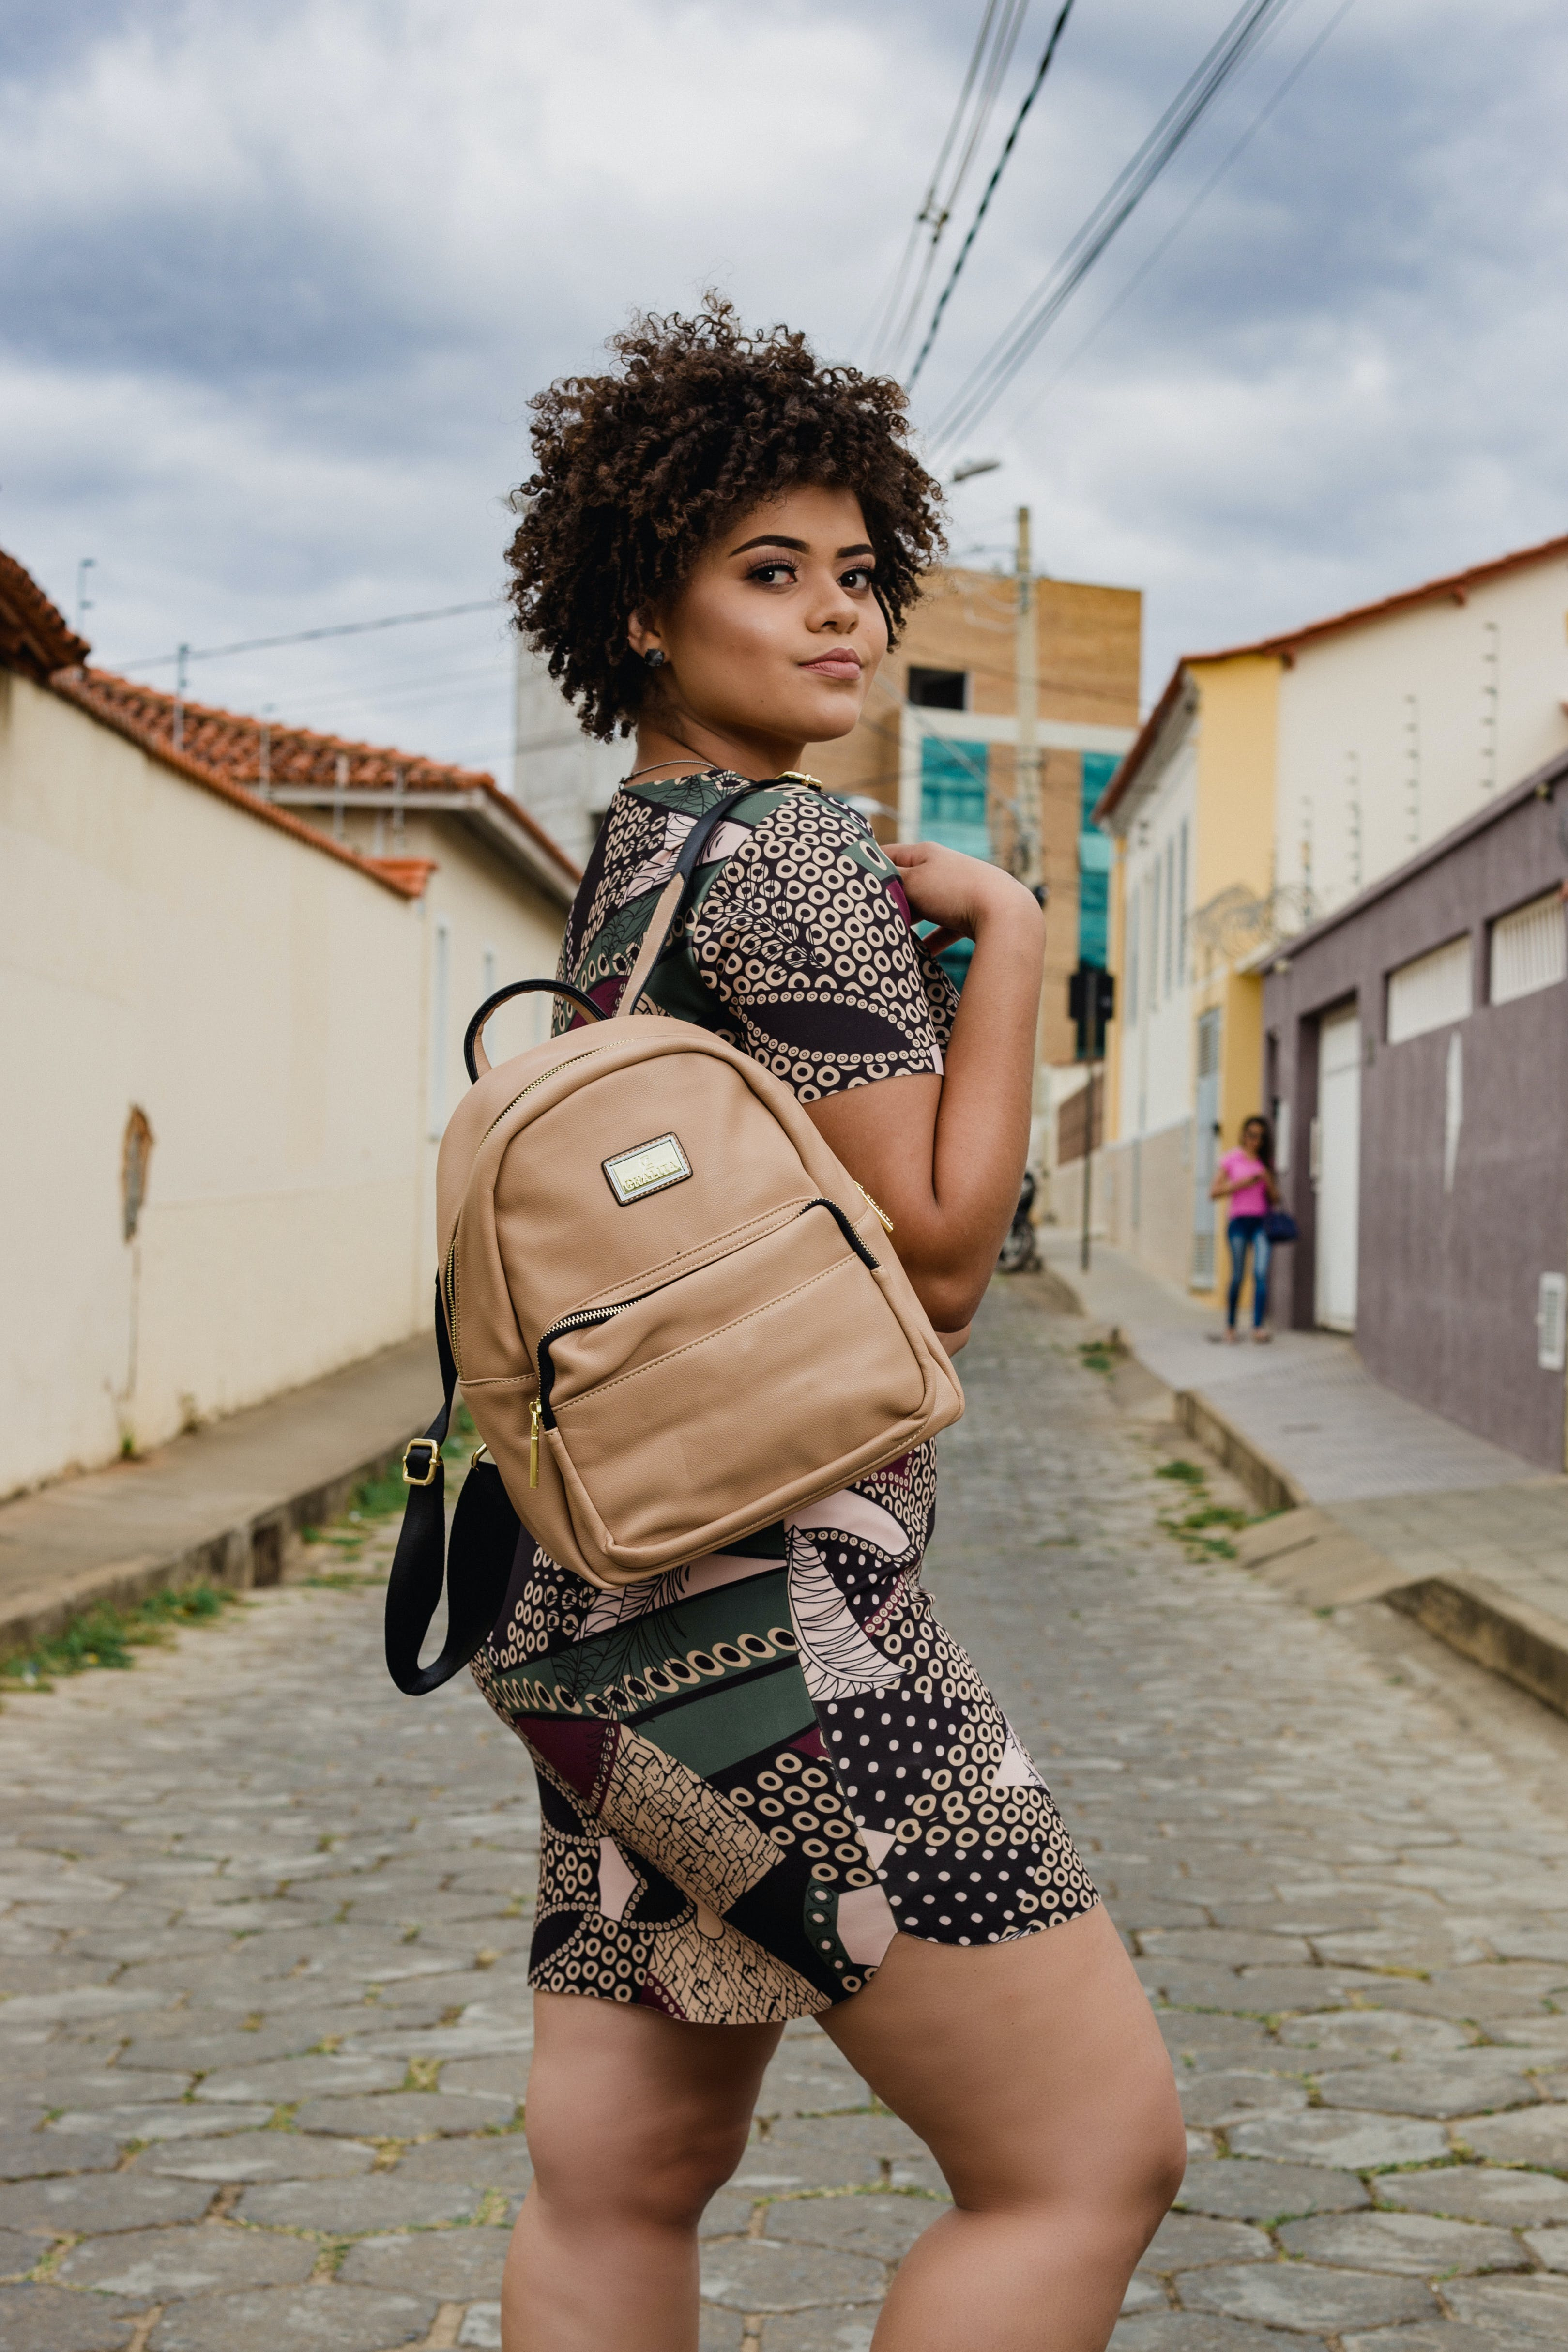 Woman in Black, Beige, and Green Dress With Brown Backpack